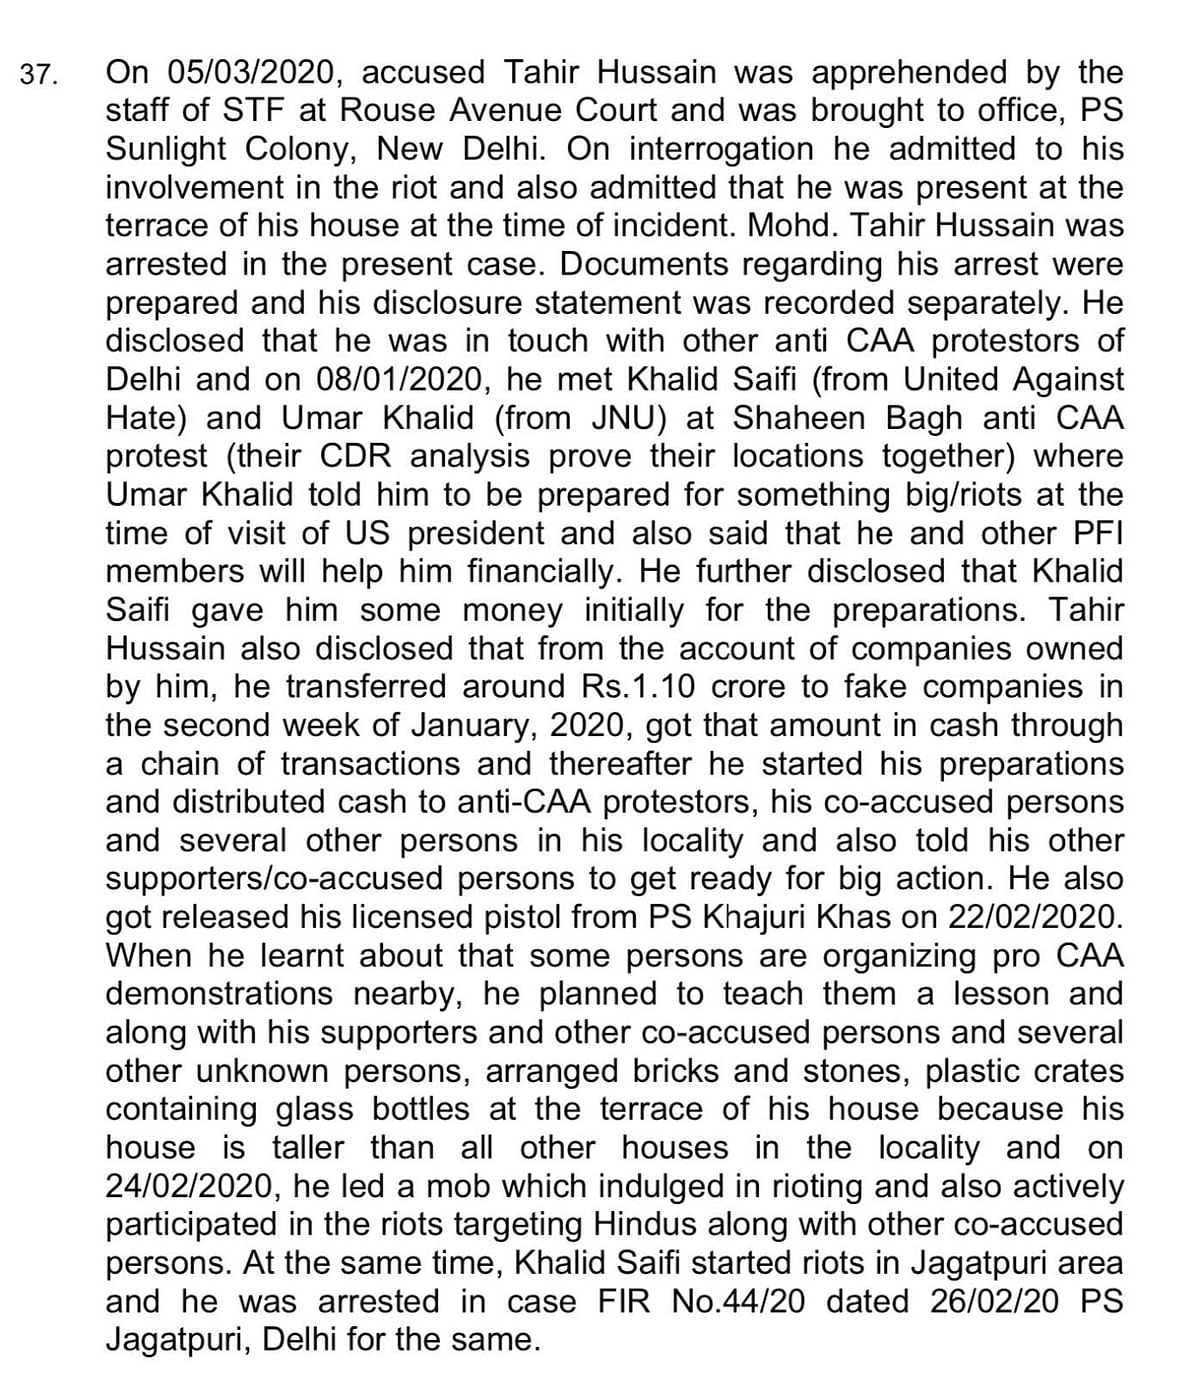 Paragraph 37 from chargesheet 101/20 that was filed in early June.